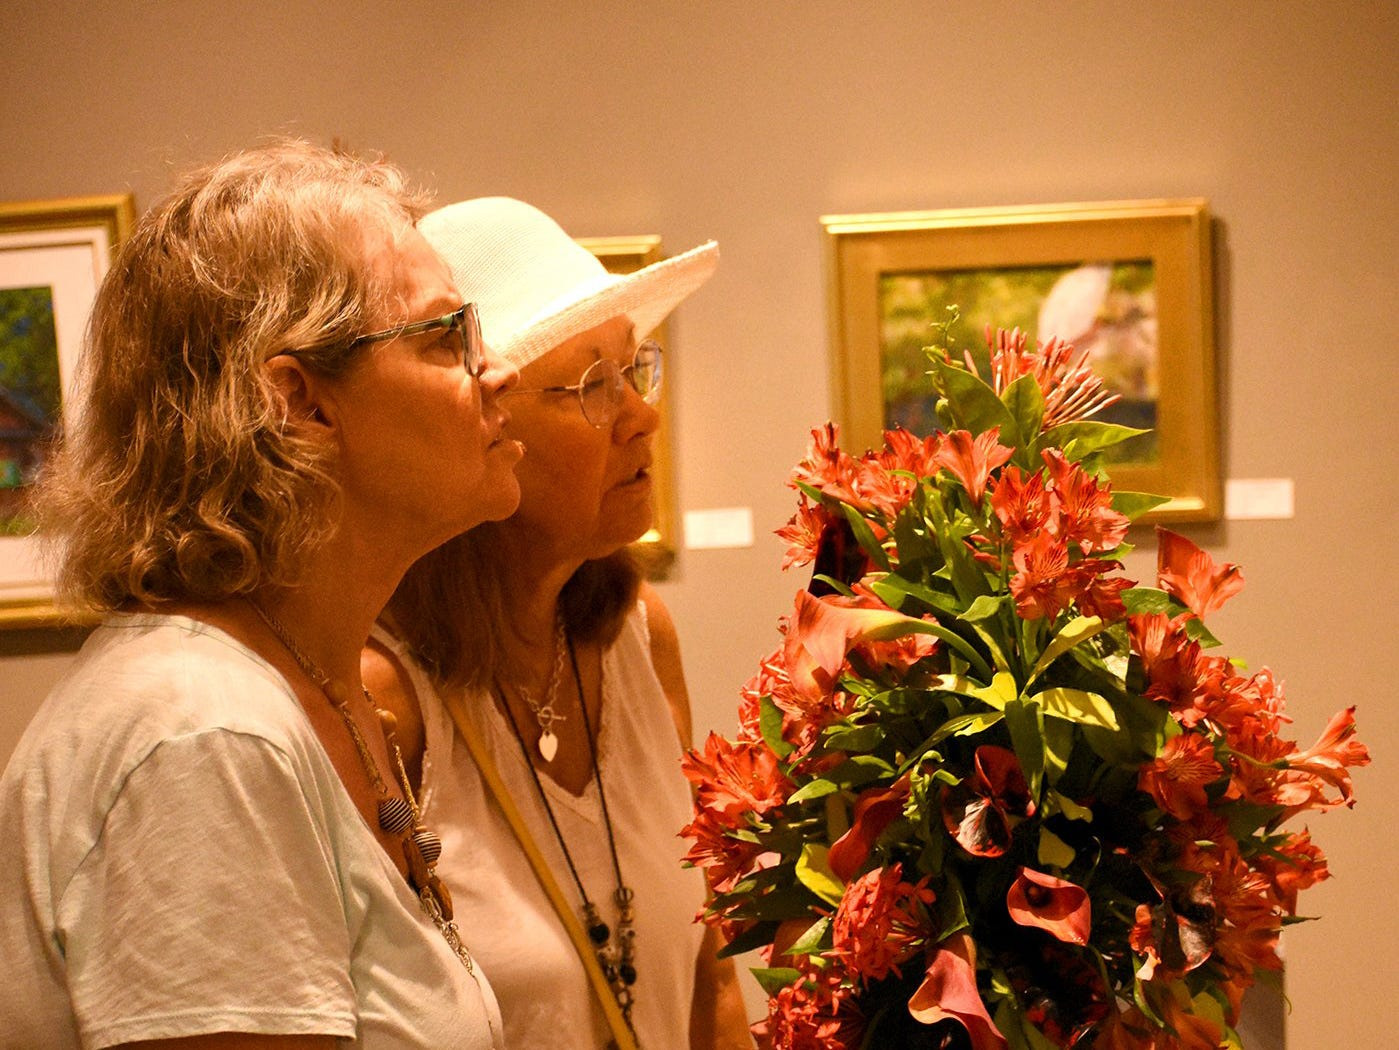 Victoria Gregory, left, and Fiona McMillan view arrangements and artwork. The Calusa Garden Club Gardening Expo at Marco Island Center for the Arts on Saturday displayed beautiful arrangements and showed people how to create their own.